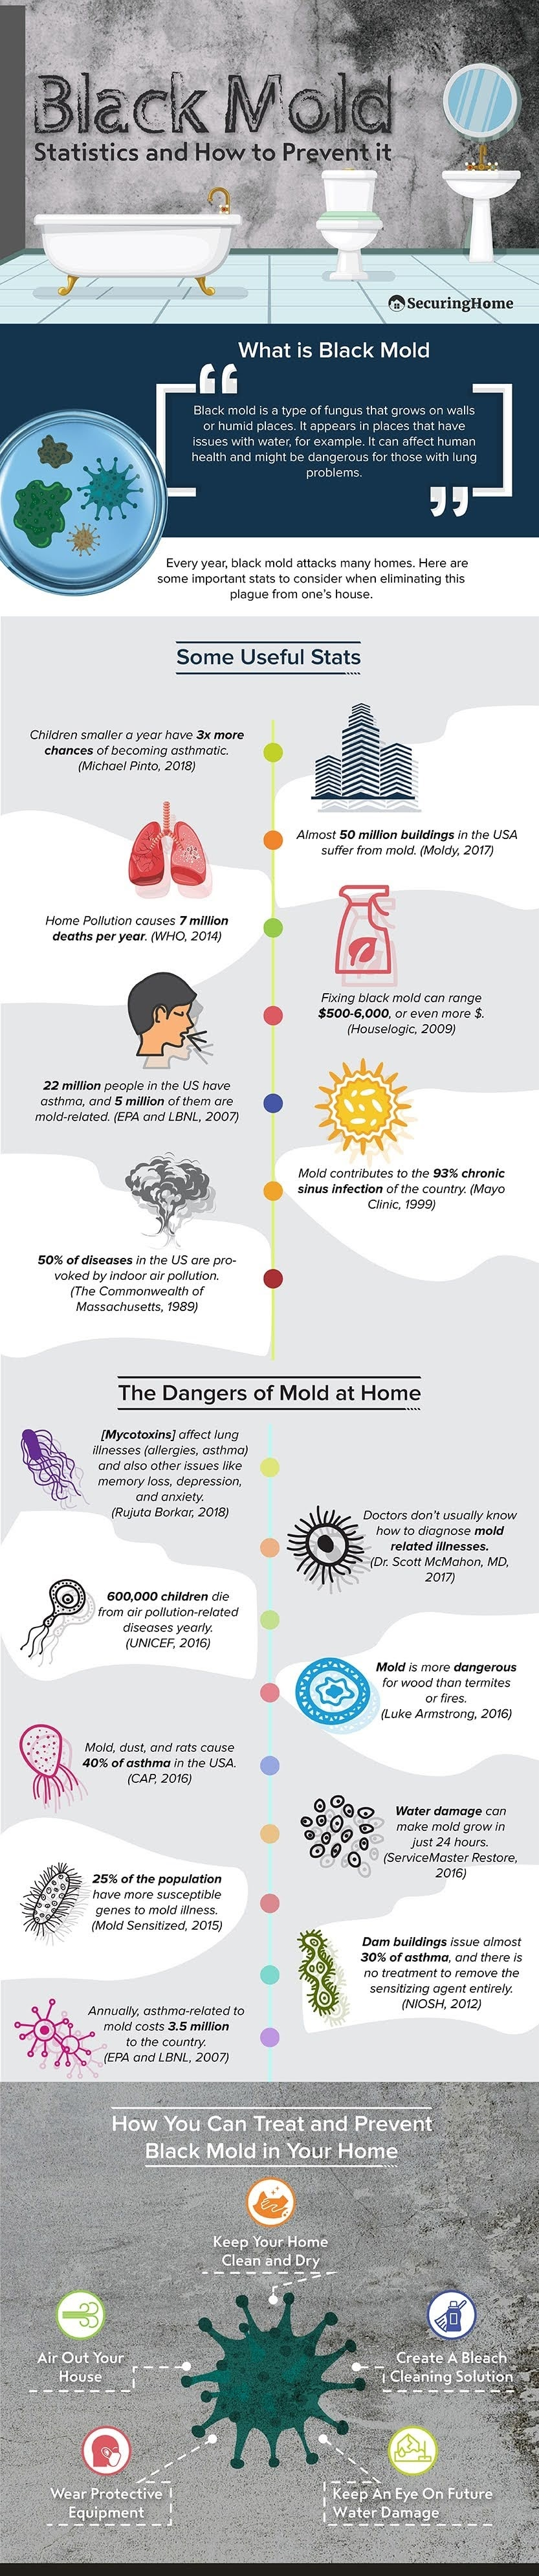 How to Get Rid of Black Mold? #infographic